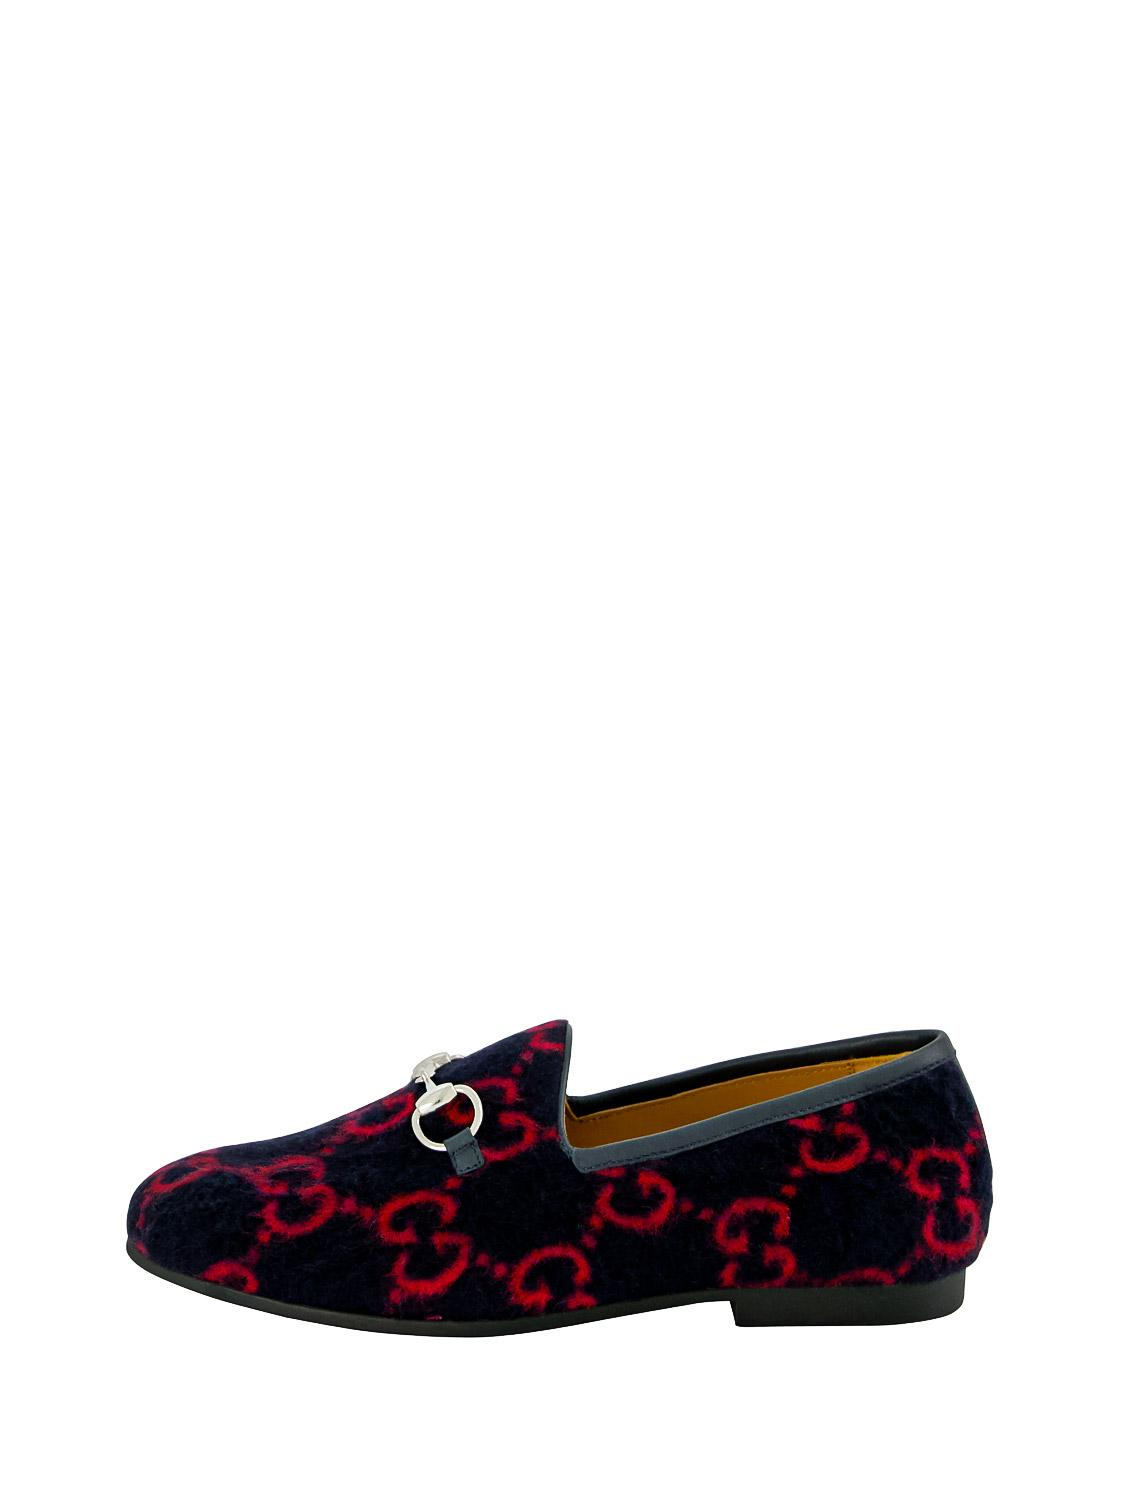 GUCCI loafers blue for girls| NICKIS.com